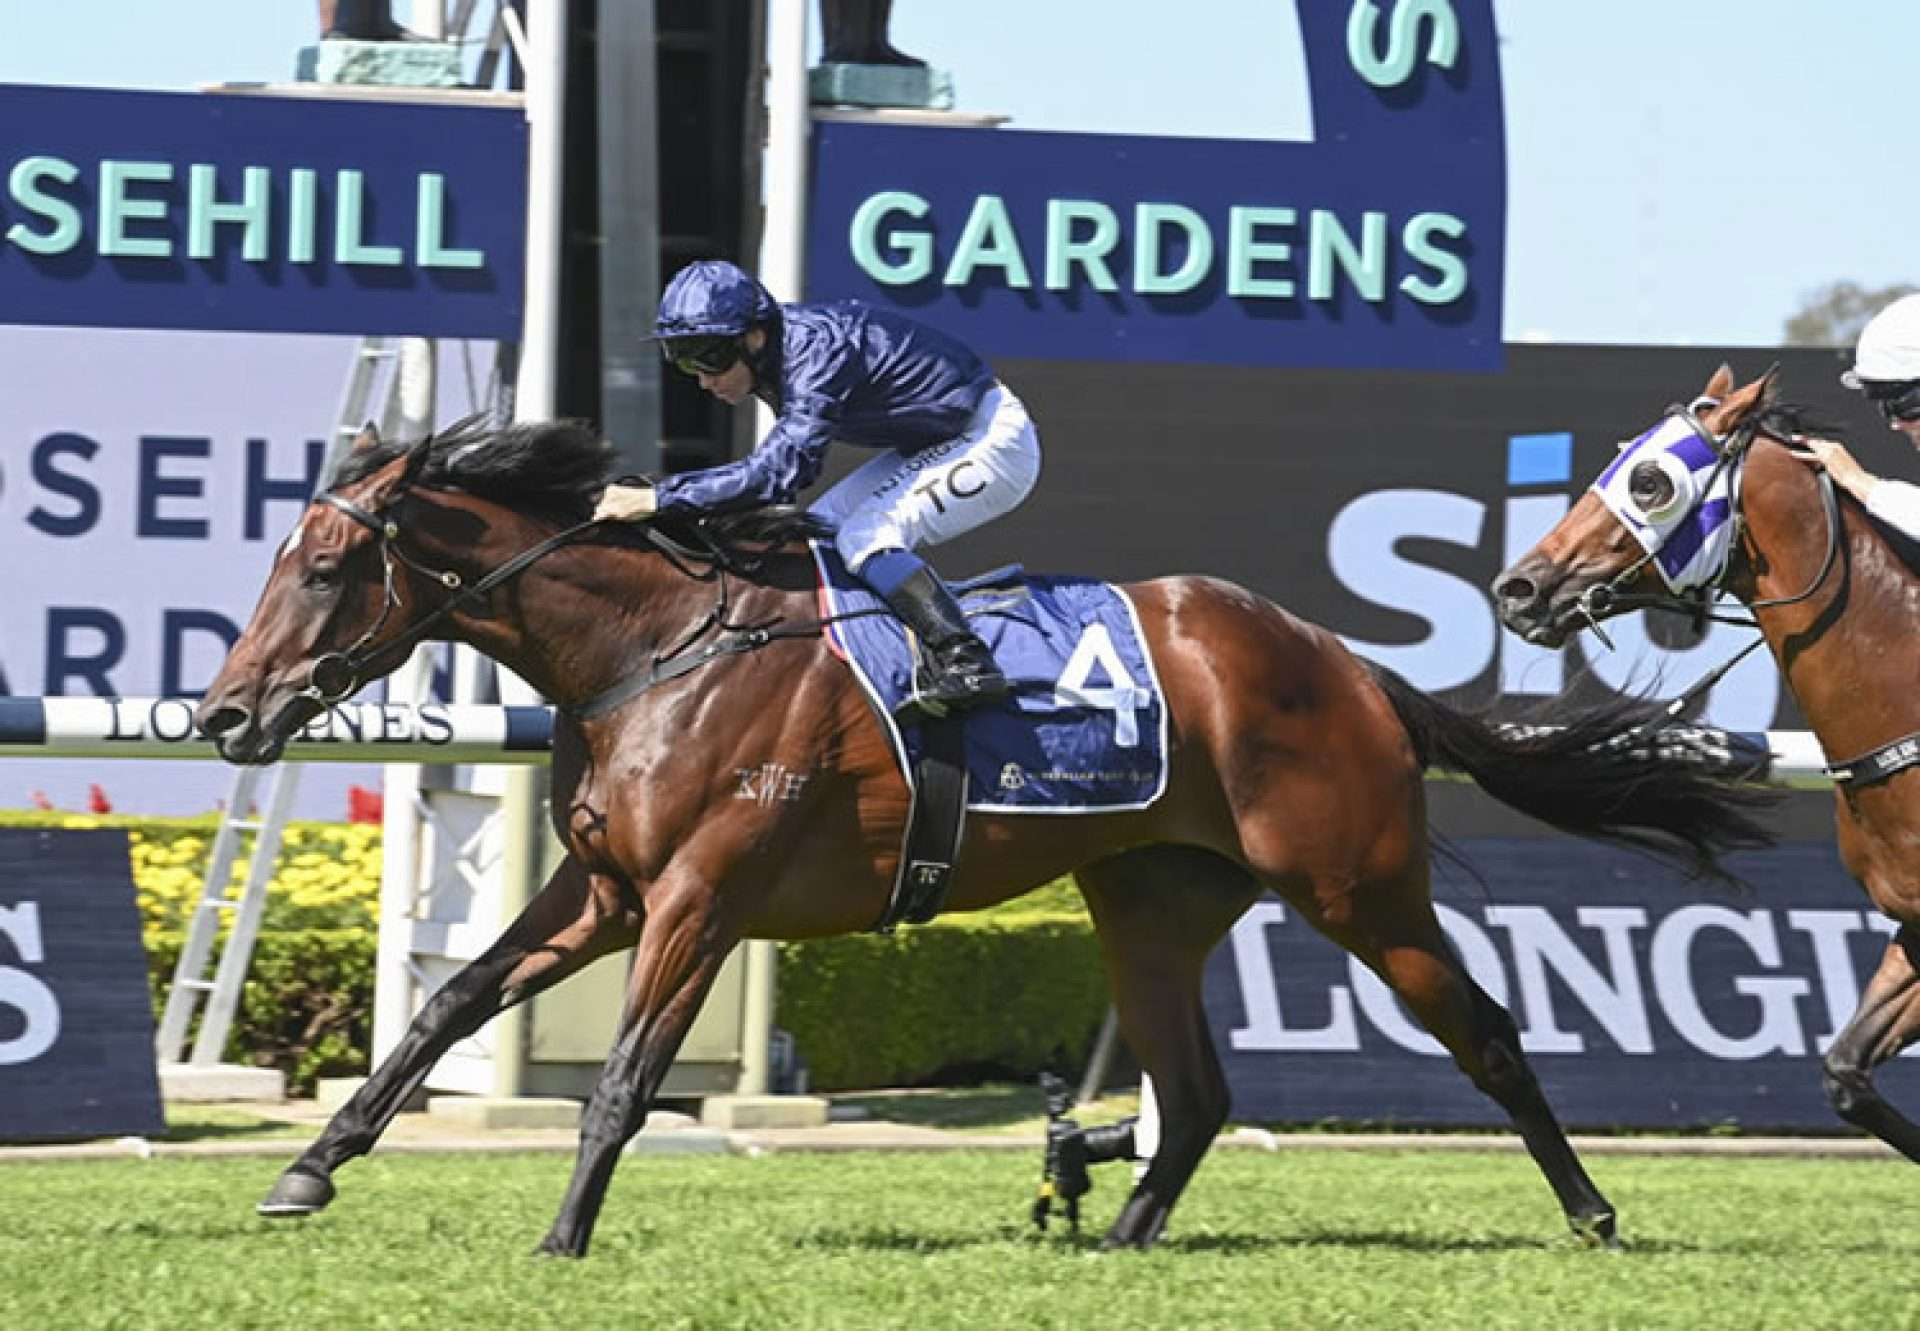 Yaletown (Westerner) winning the Gr.2 Tulloch Stakes at Rosehill